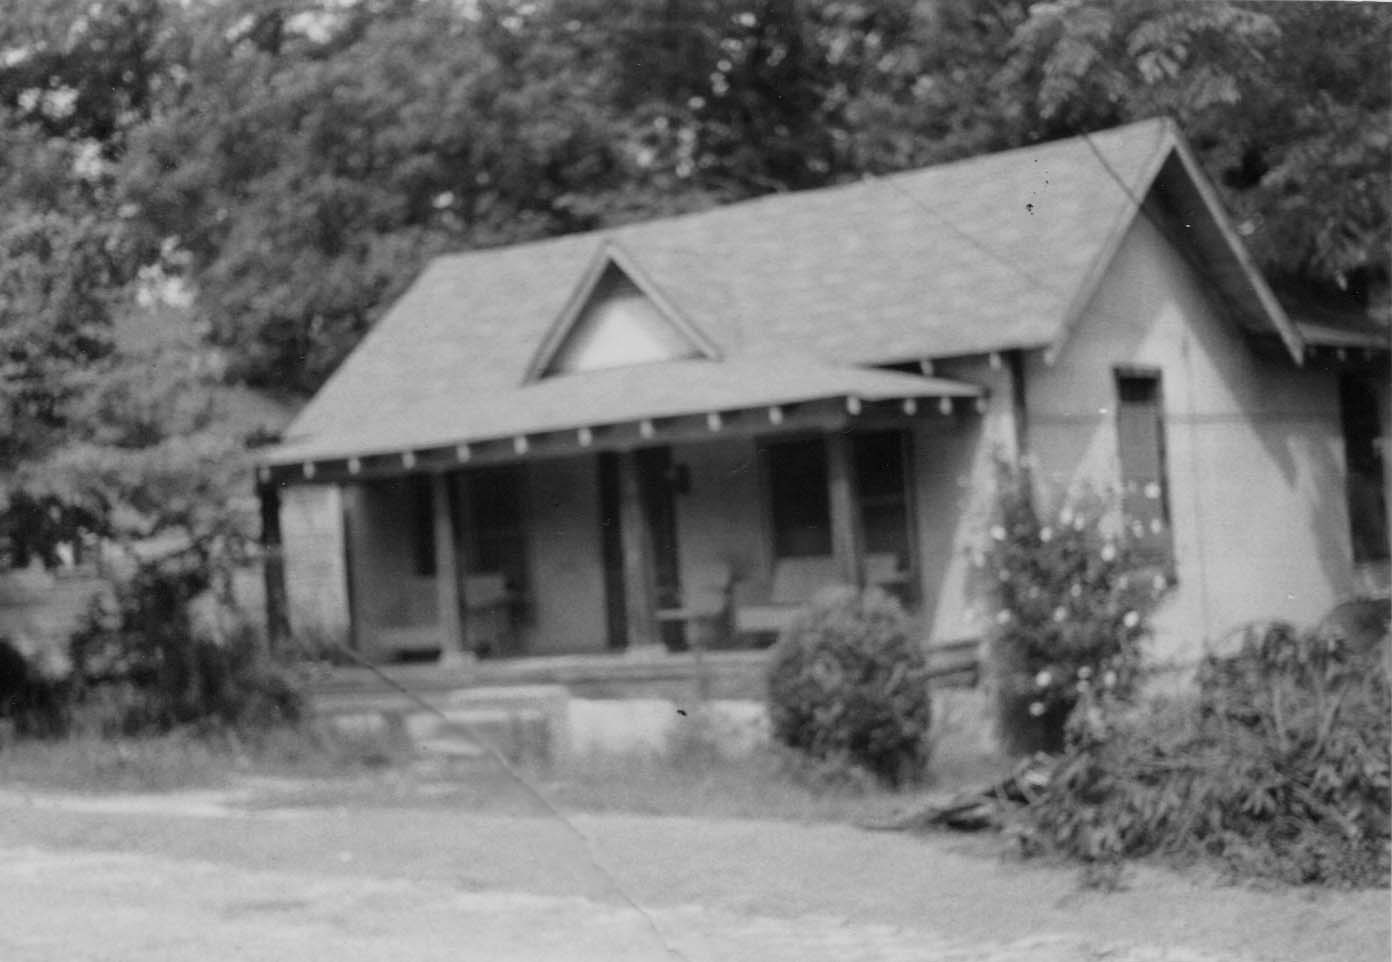 one of his homes in S.C.